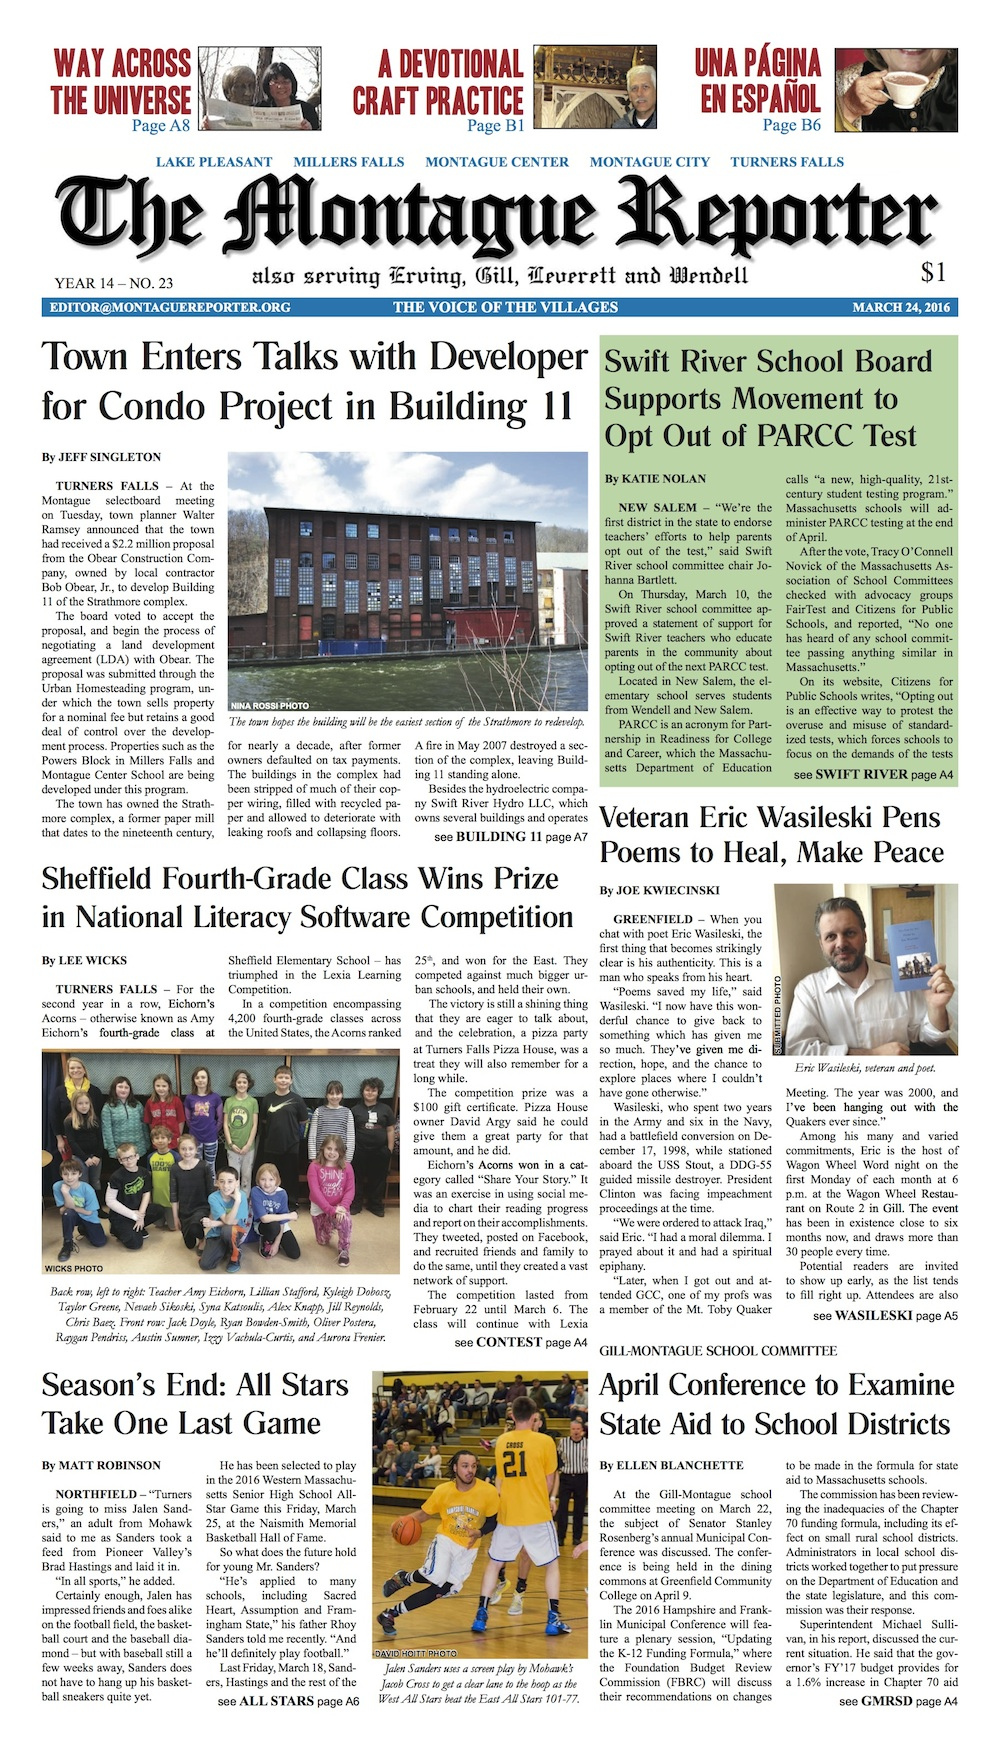 Page A1, 3/24/16